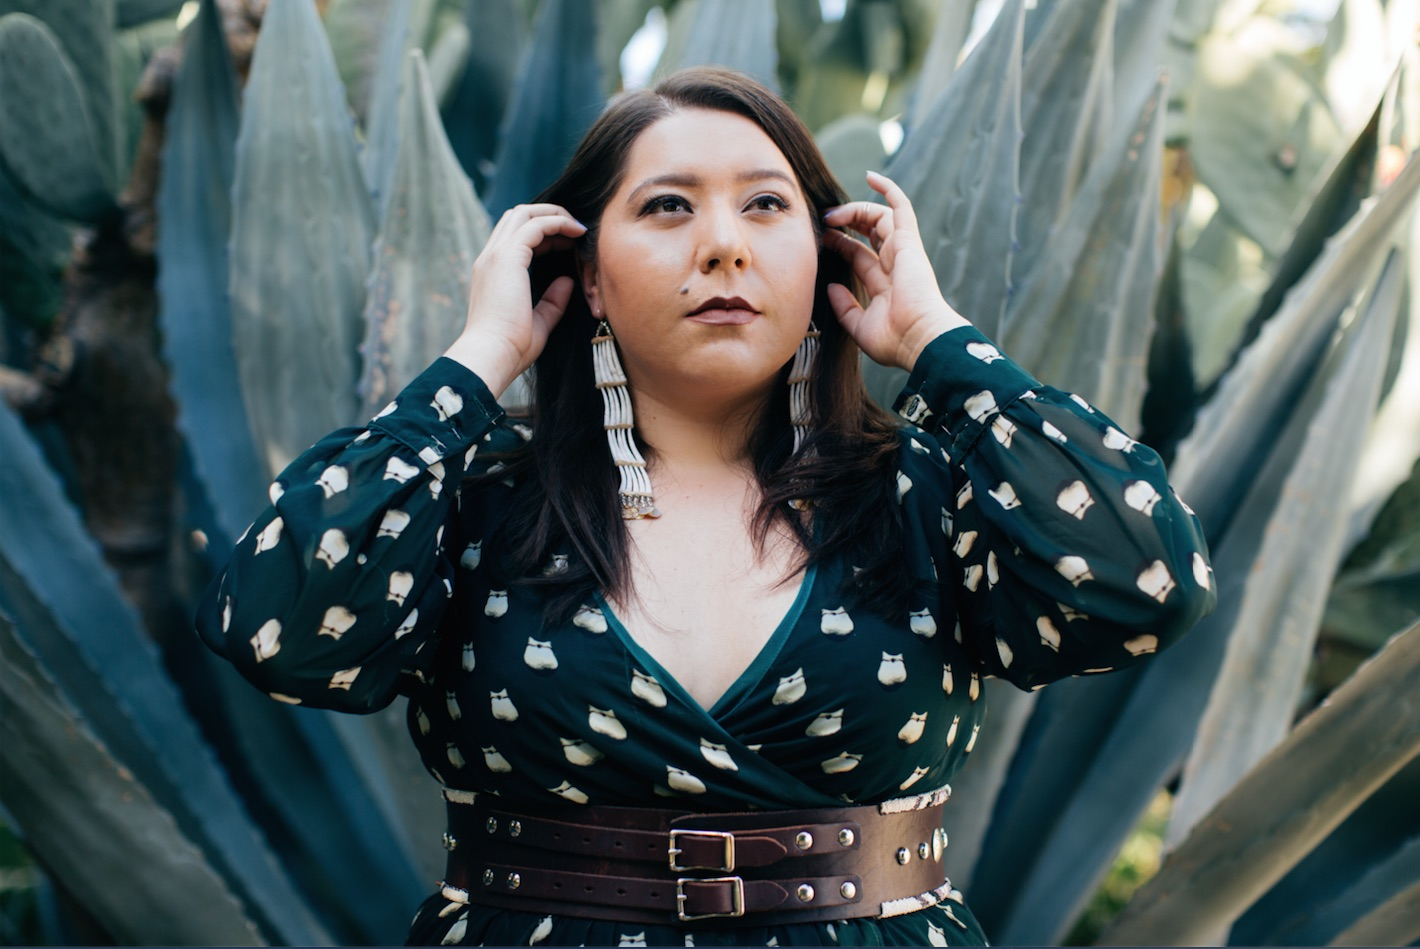 Native American fashion designer Bethany Yellowtail